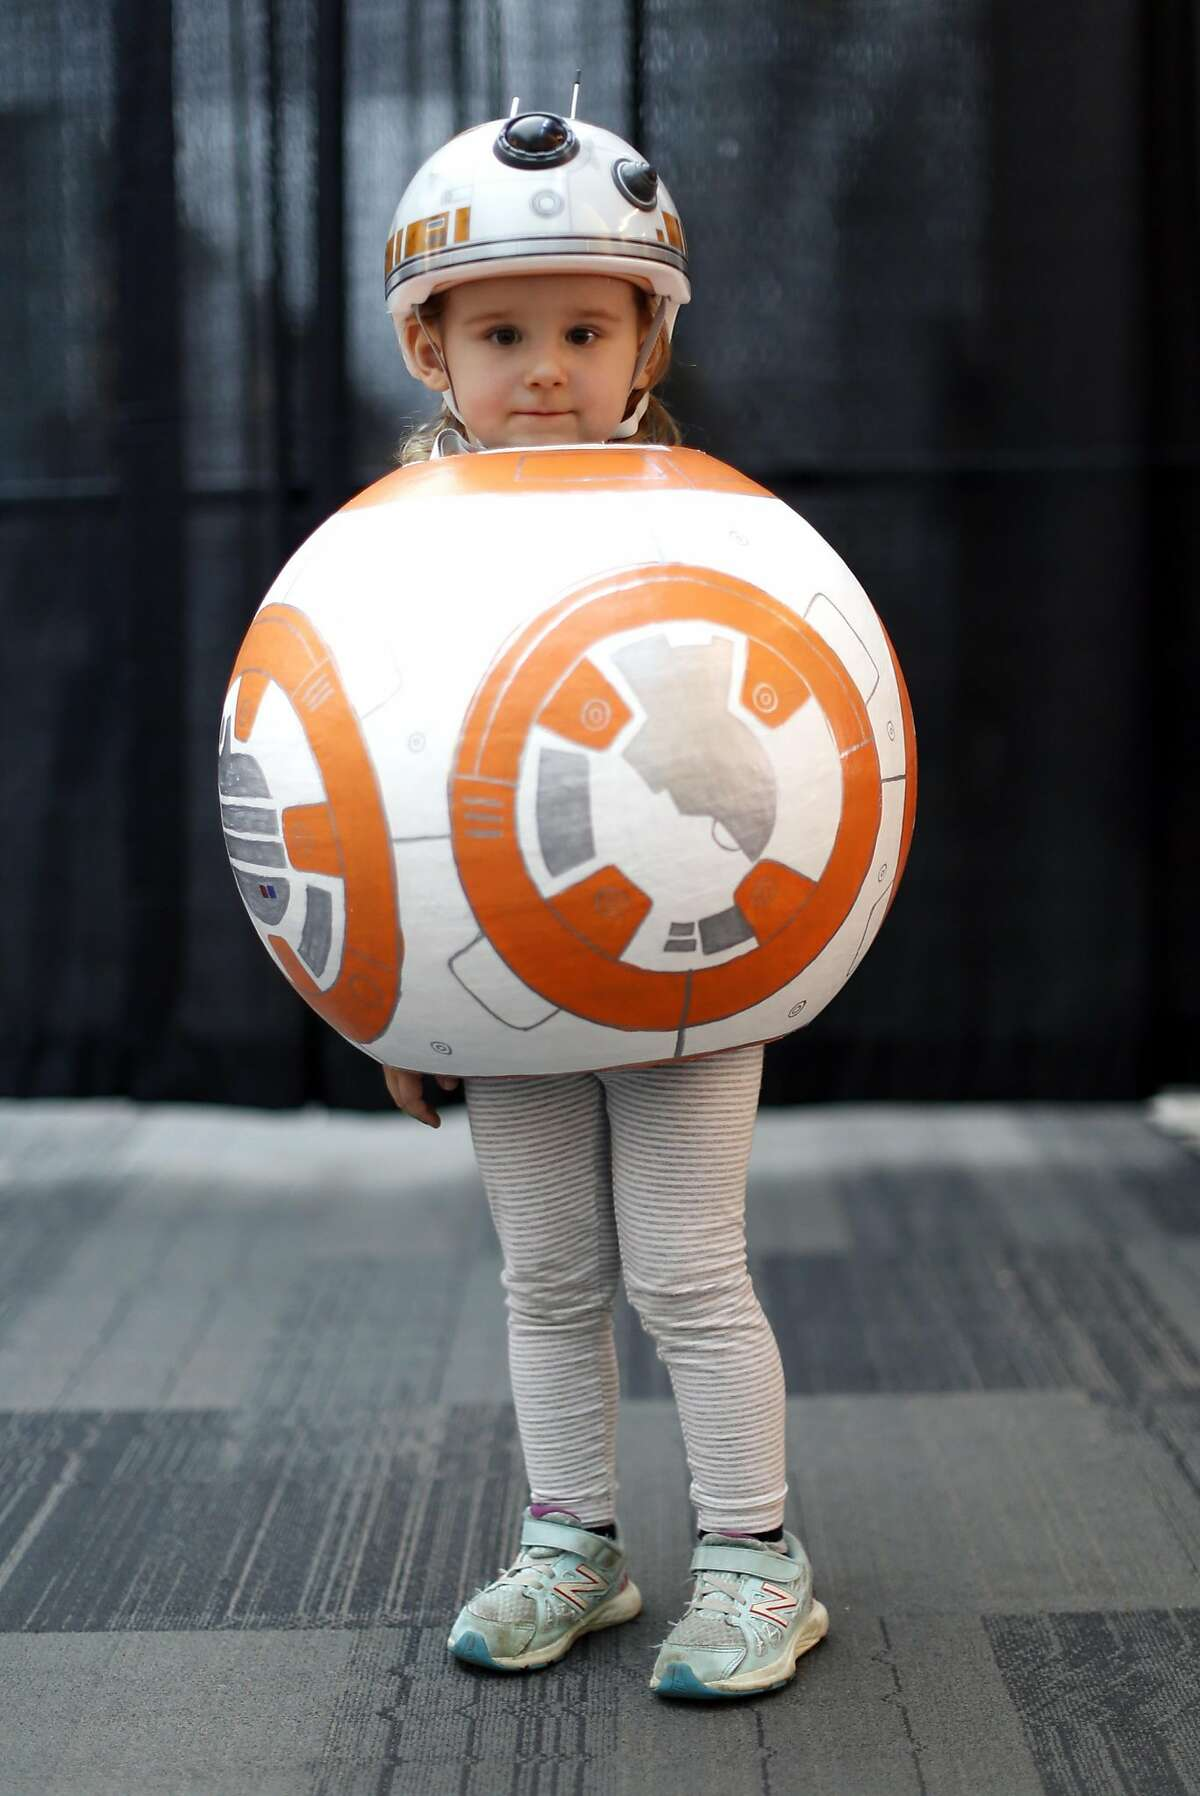 """Sophia Sinesio, 3, of Saratoga as """"BB-8"""" at Silicon Valley Comic Con in San Jose, Calif., on Sunday, March 20, 2016."""